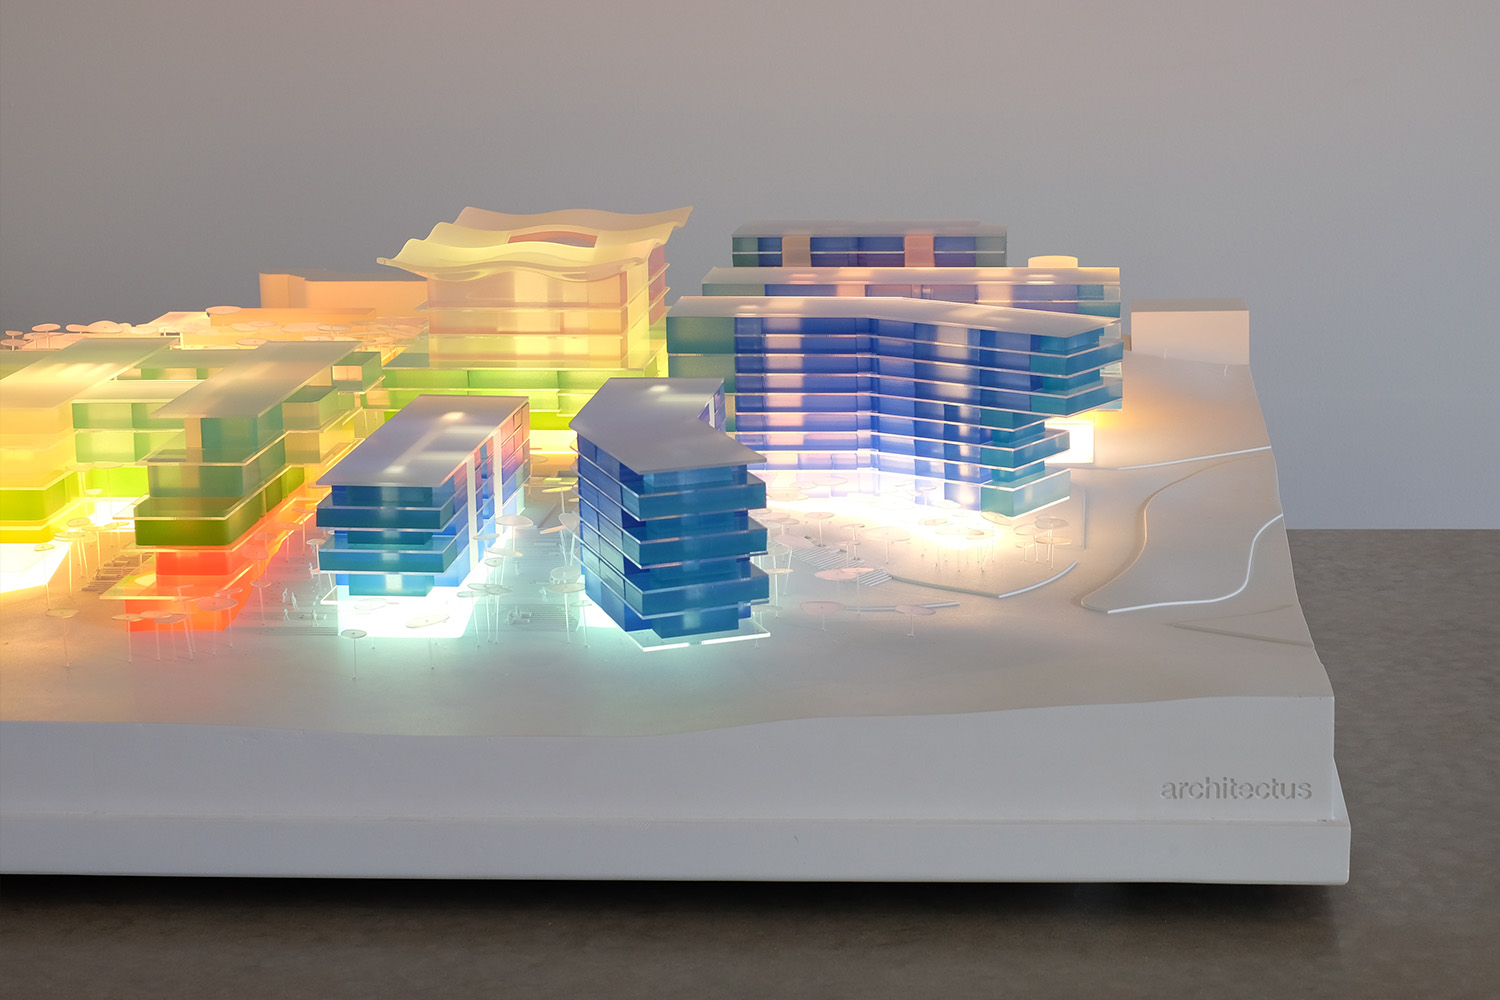 Interactive Architectural model with lighting